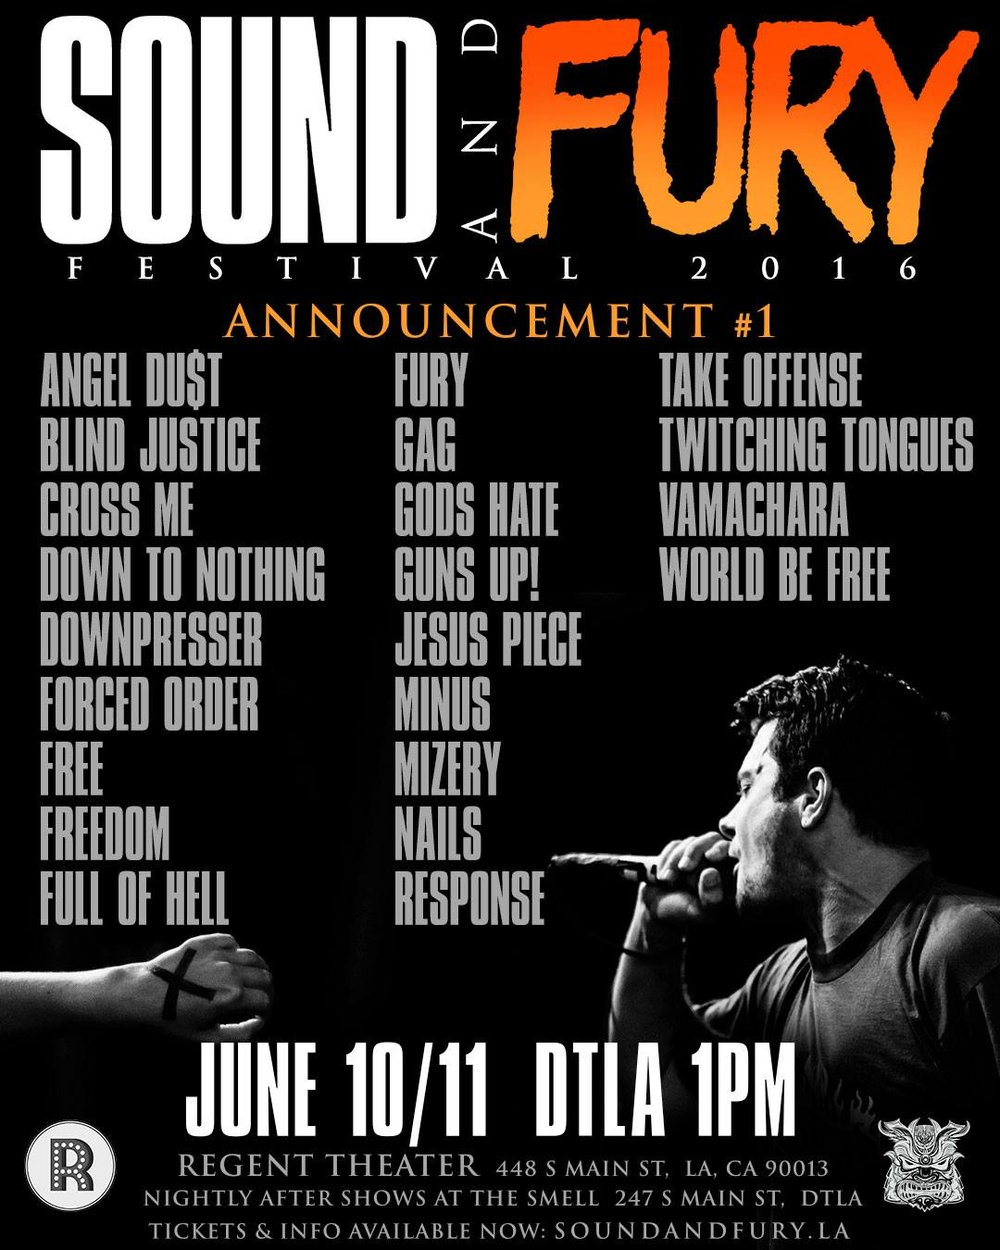 - Live photograph used for the official SOUND AND FURY 2016 flyers + OG passes.